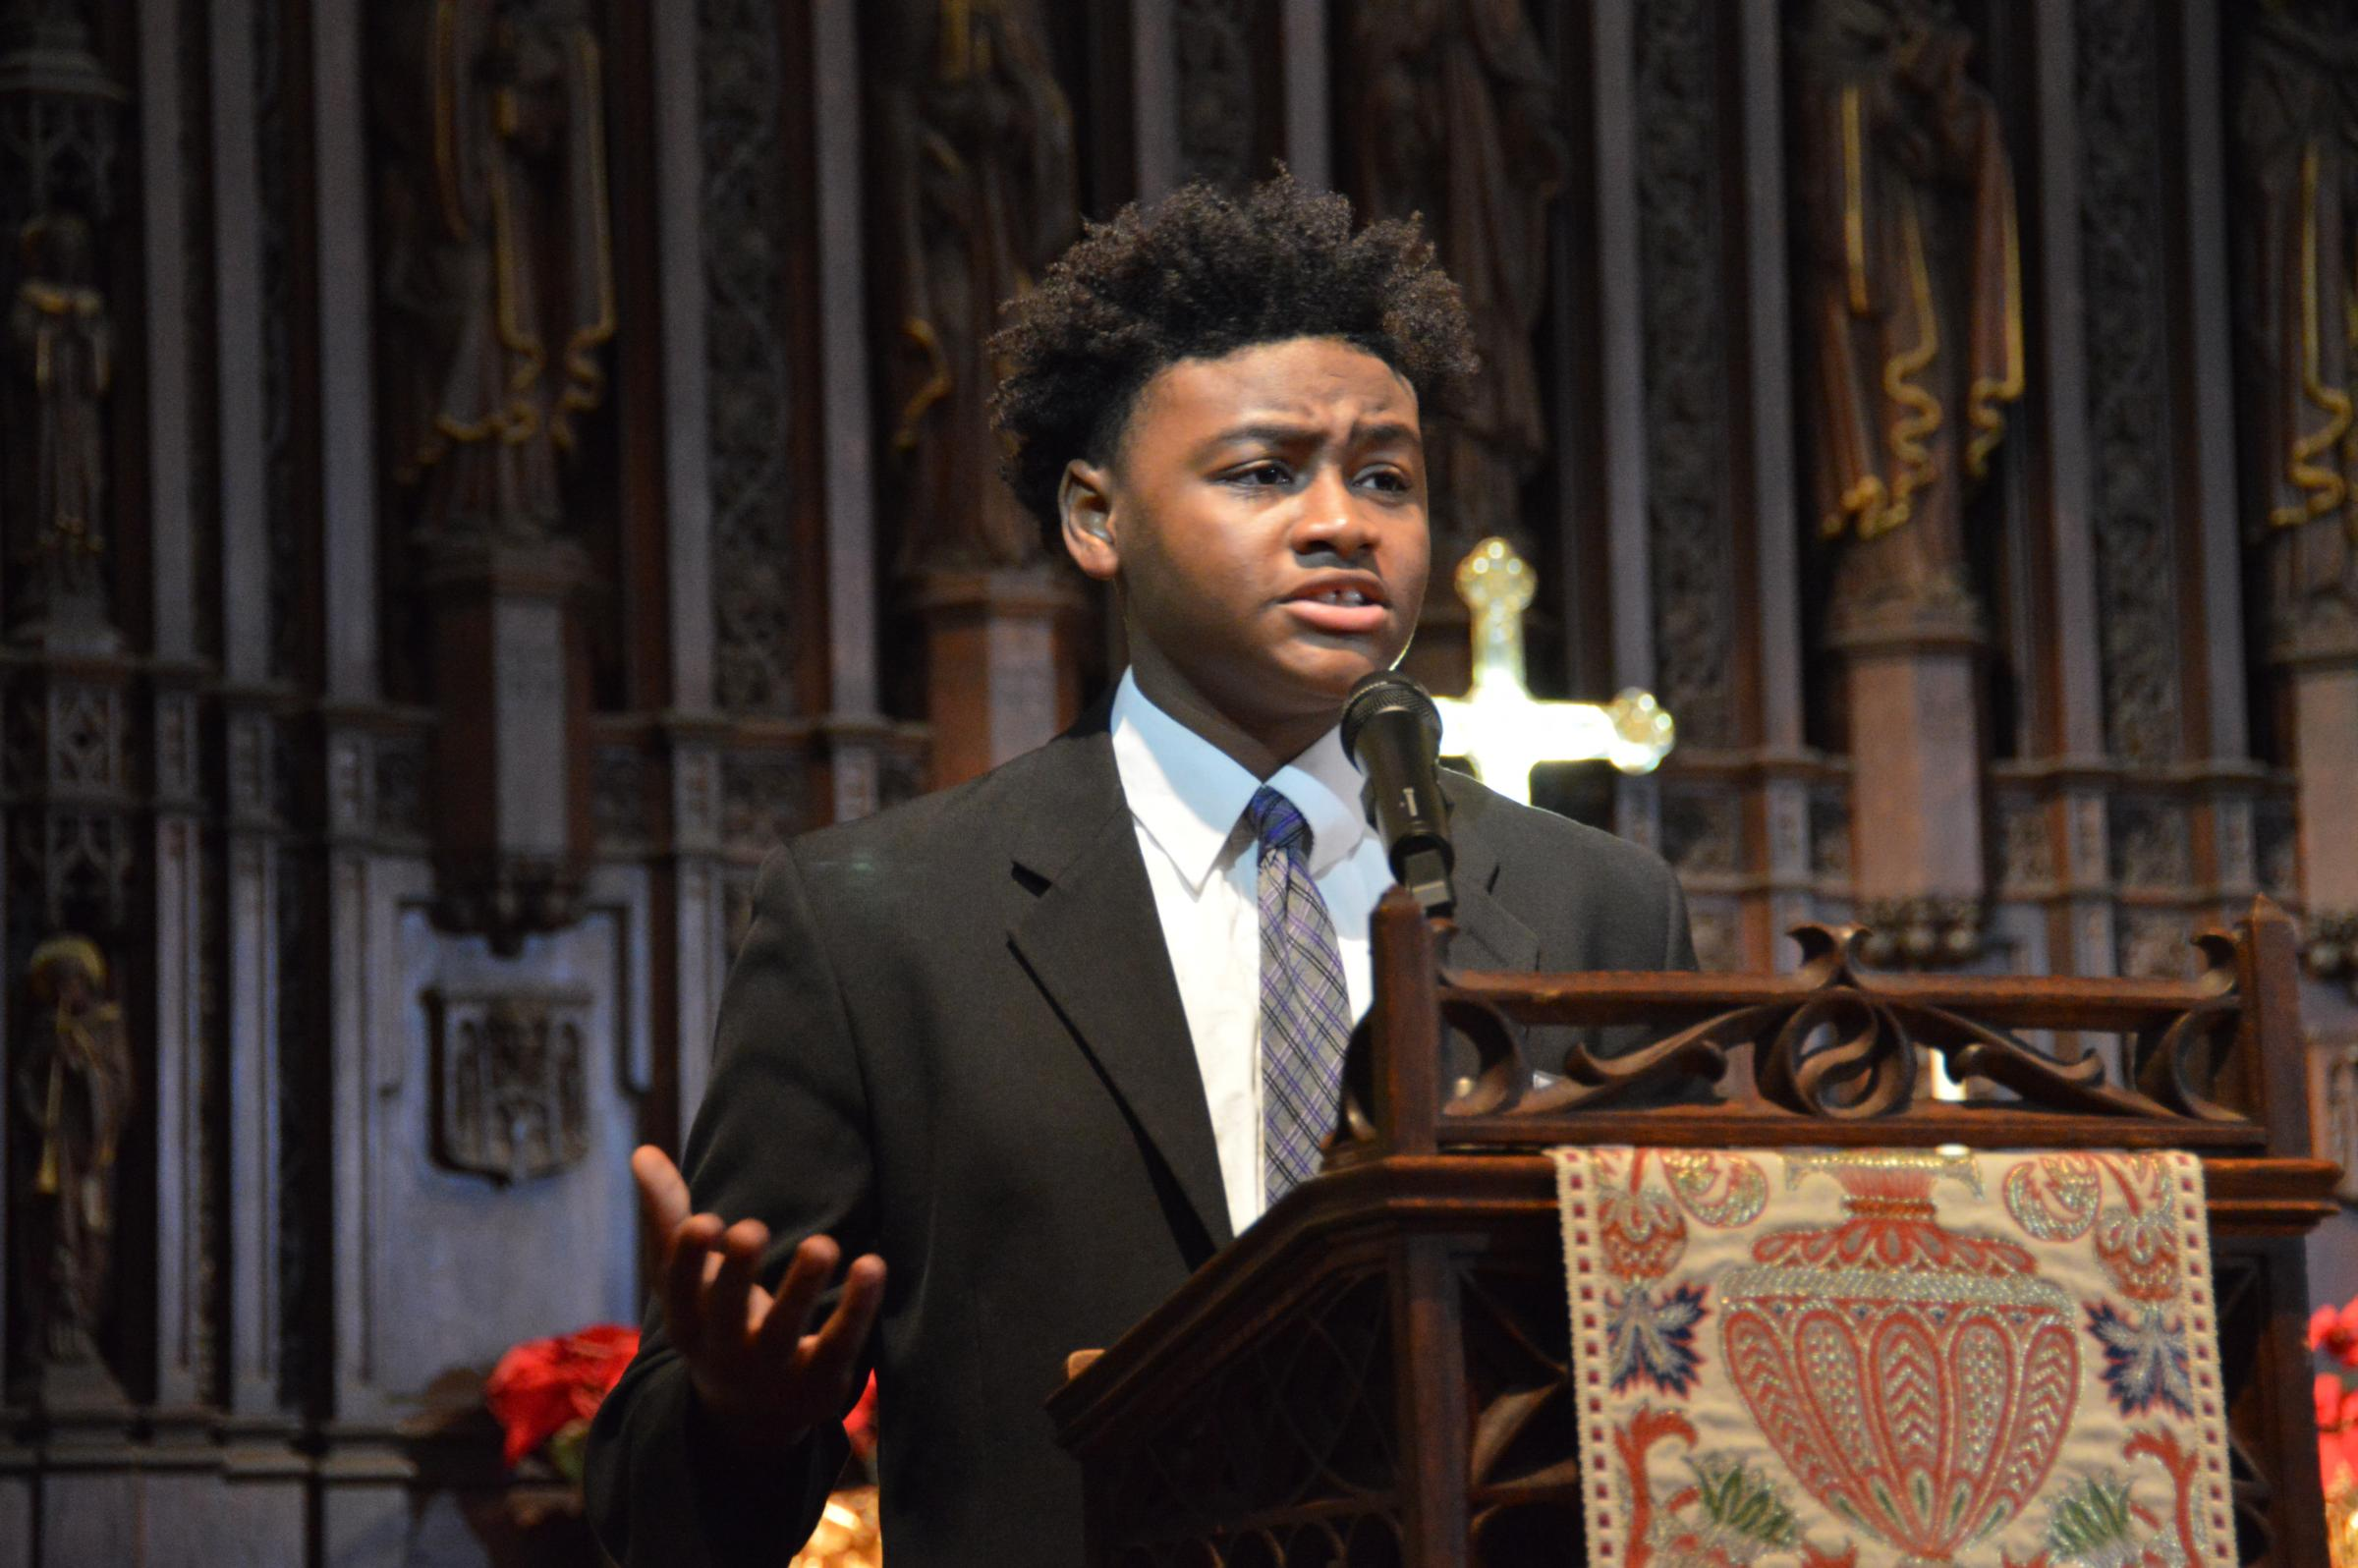 ohio students are recognized for speeches and work honoring martin freshman playon patrick from columbus shared an essay praising dr martin luther king jr from the pulpit of trinity episcopal church on capitol square in